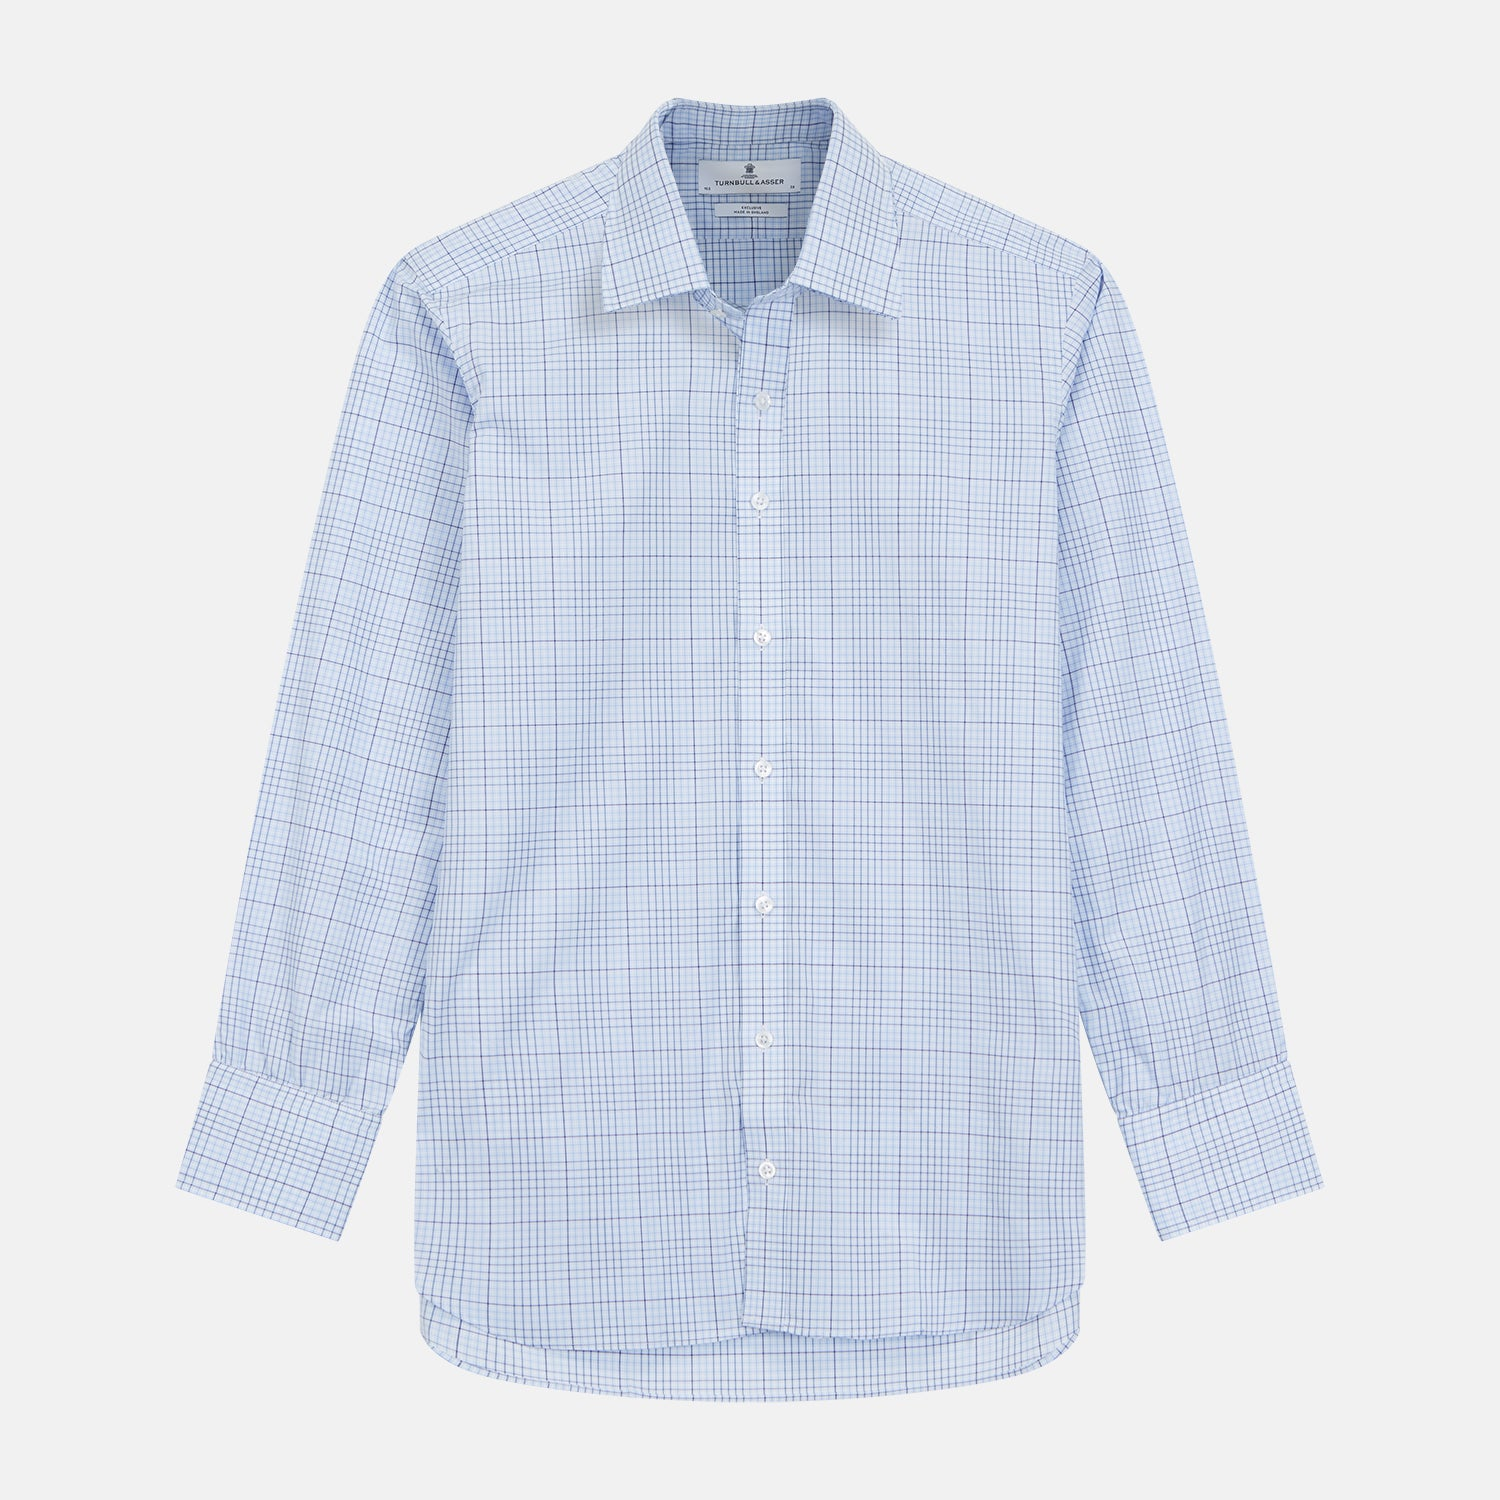 Blue Fine Check Shirt with T&A Collar and Three-Button Cuffs